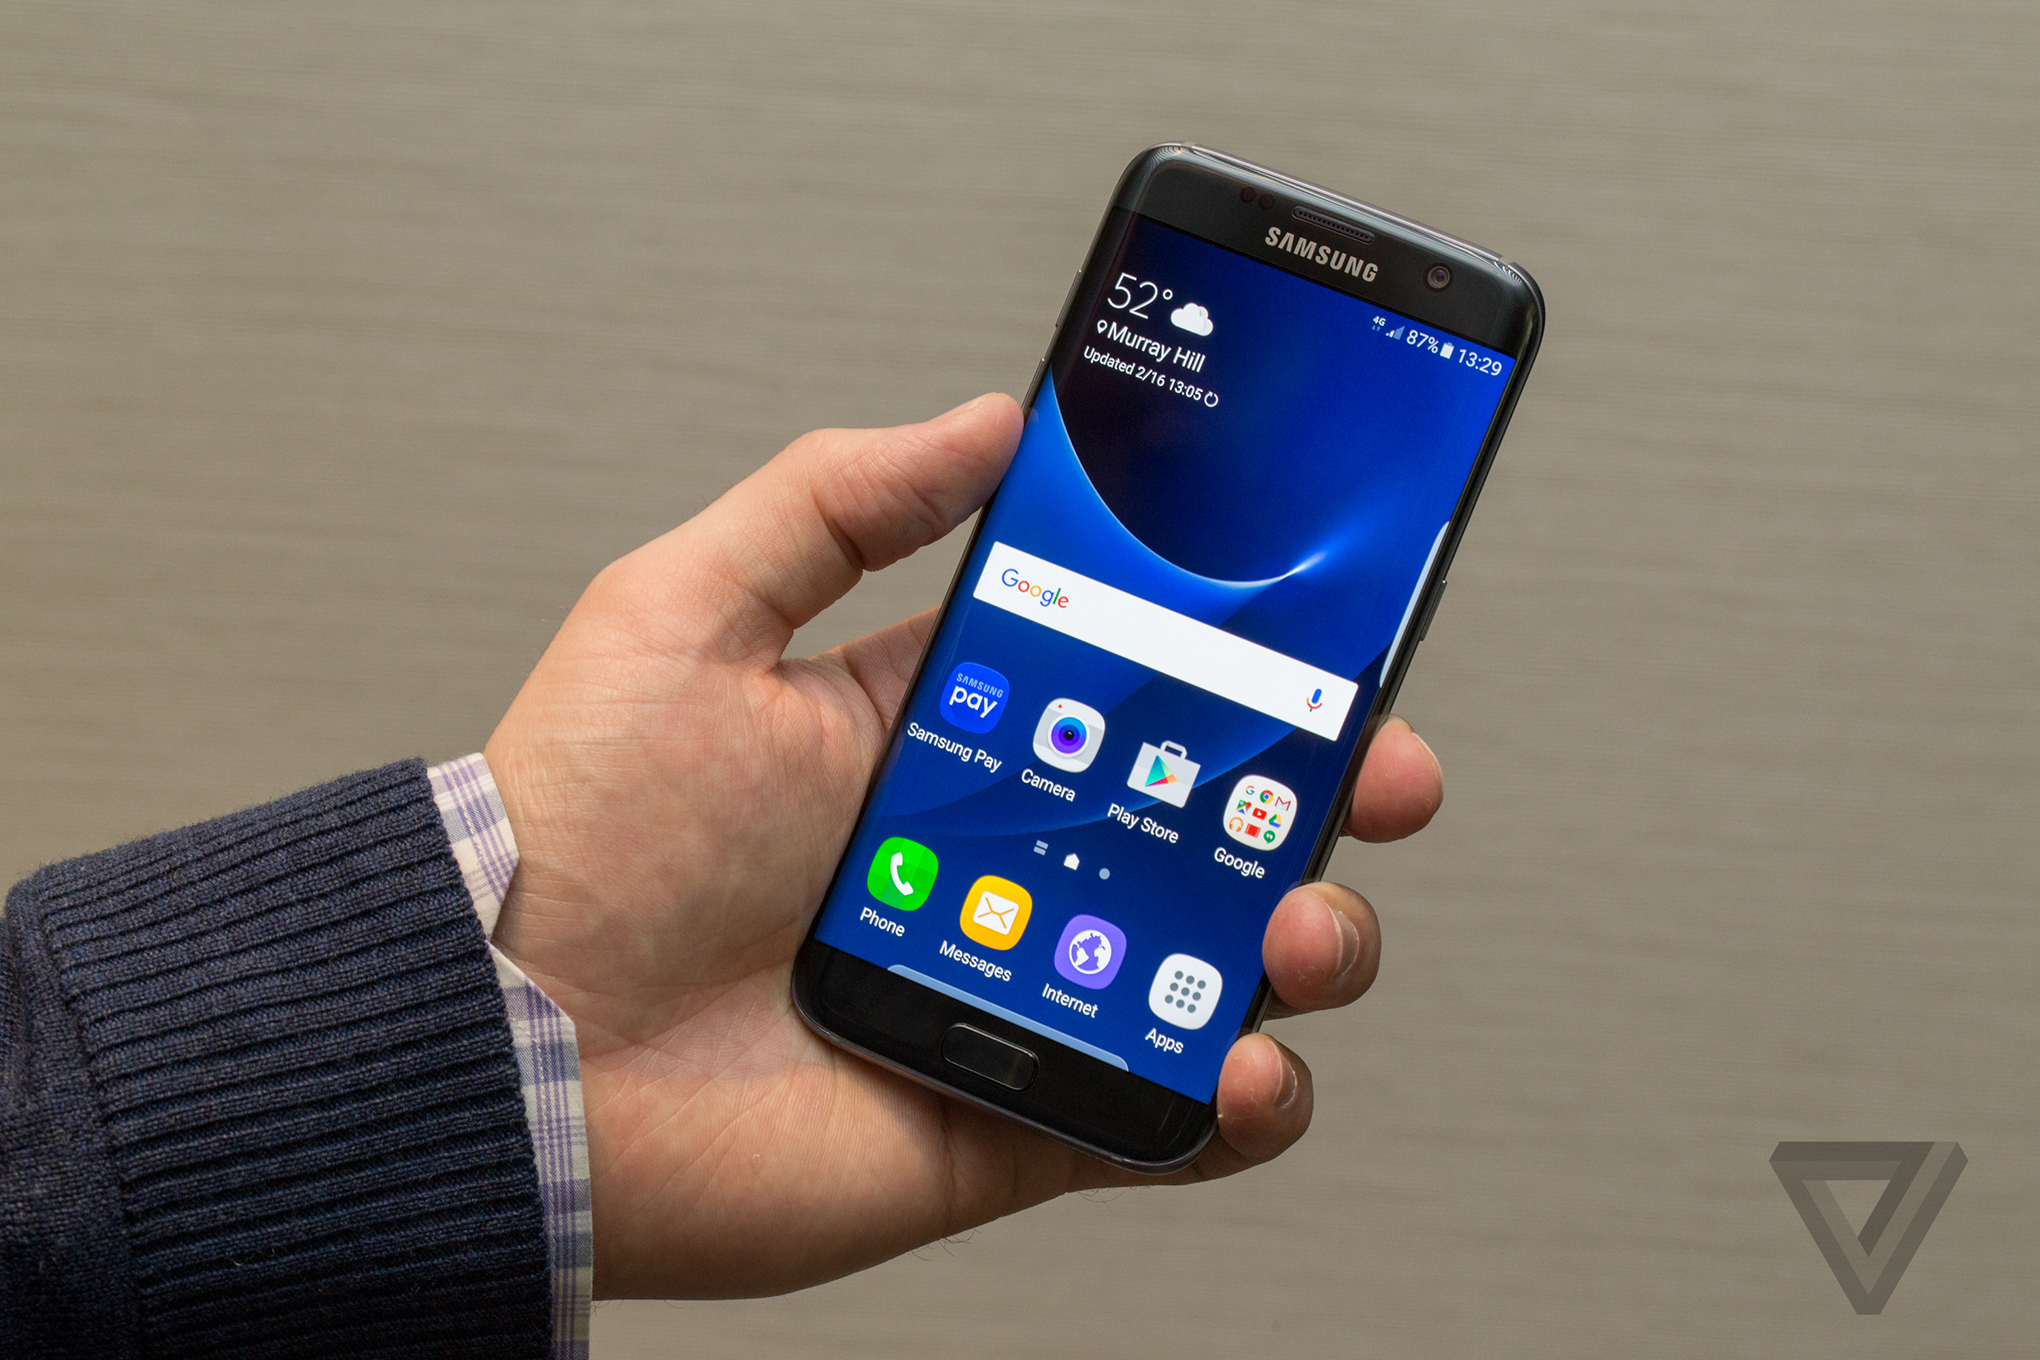 Samsung's Galaxy S7 and S7 Edge bring refinement to a proven design